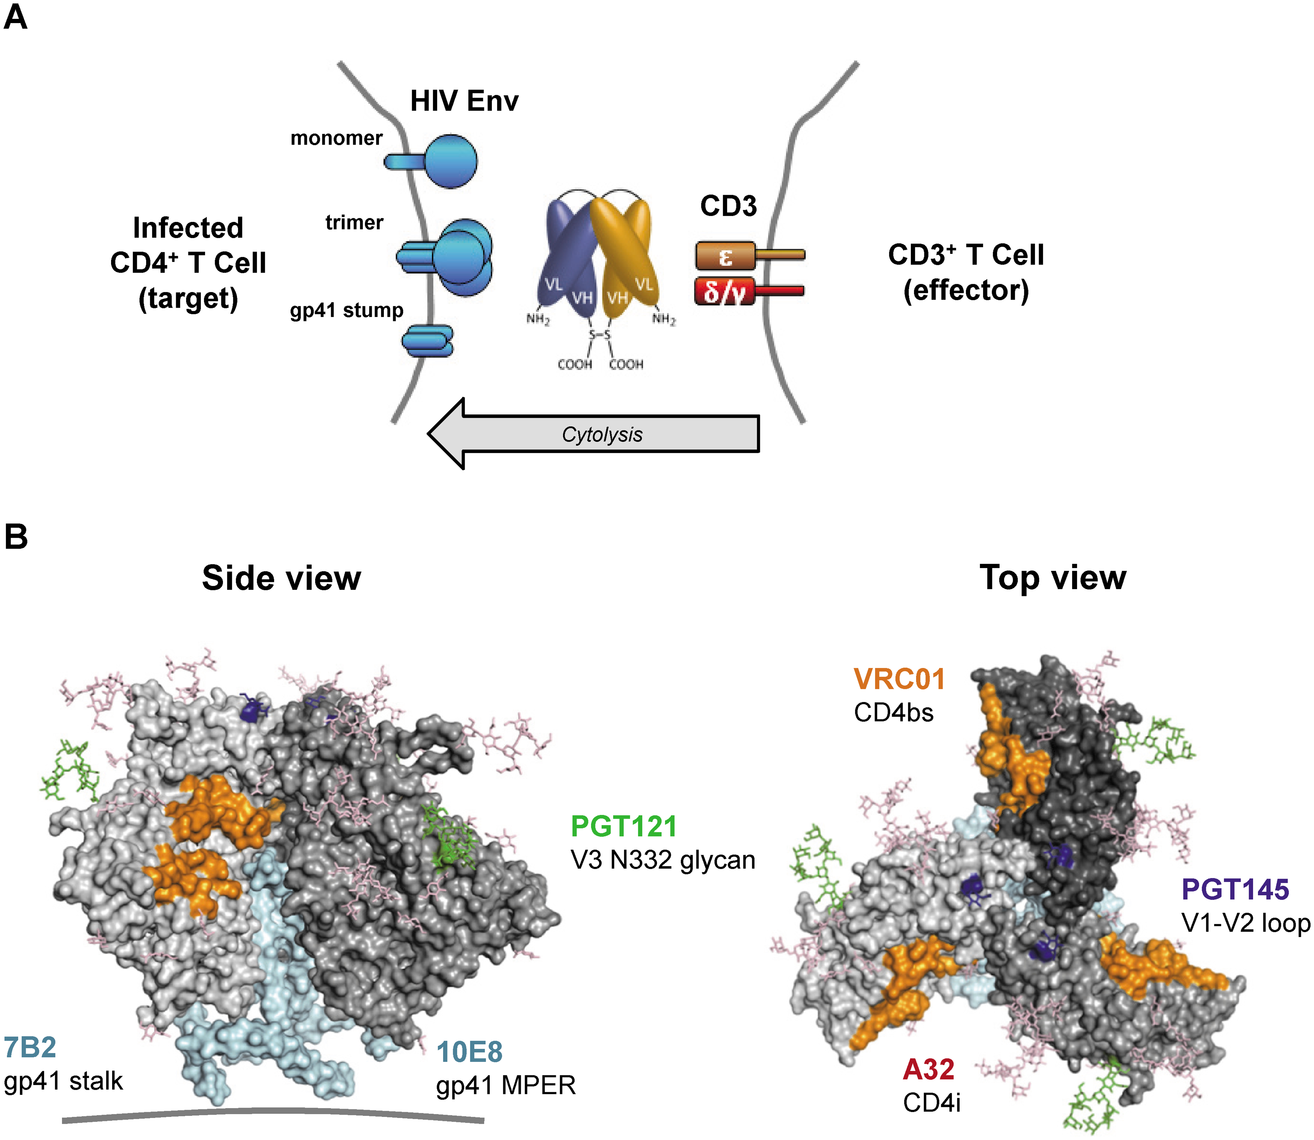 HIVxCD3 DARTs retarget cytolytic CD3<sup>+</sup> T-cells to Env-expressing HIV-infected CD4<sup>+</sup> T-cells.